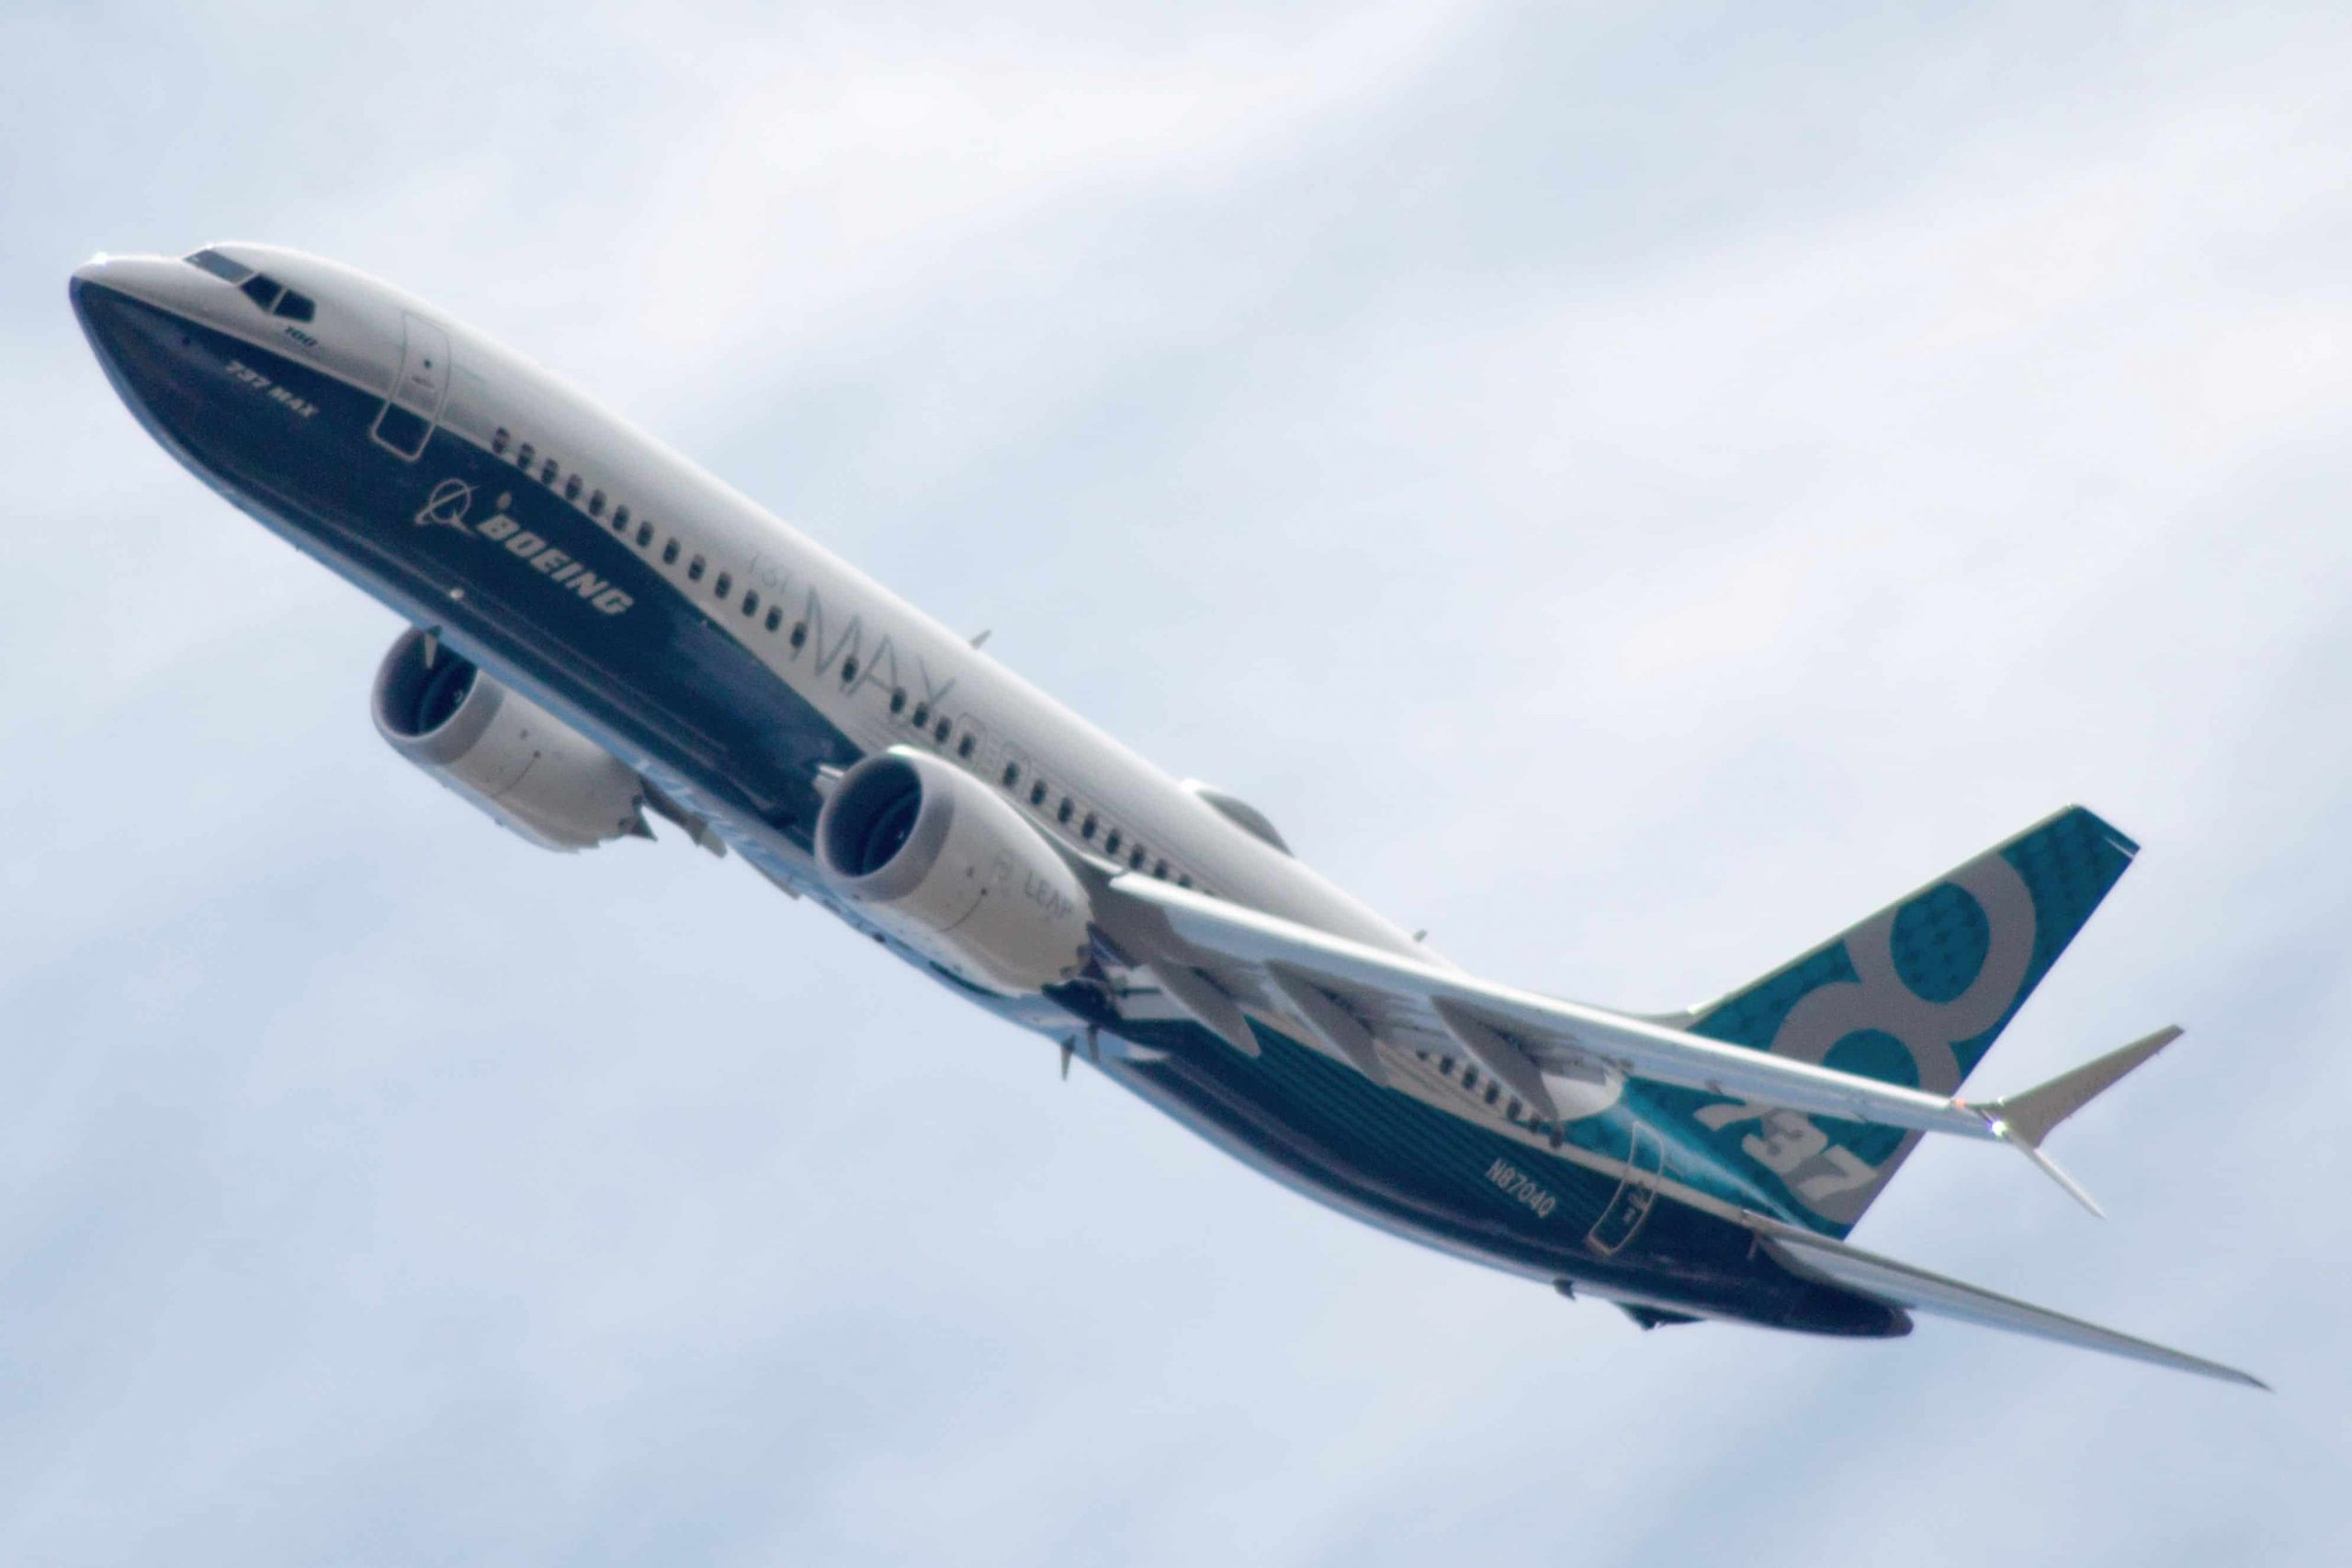 Boeing 737 MAX Crashes: Everything You Need To Know In 5 Questions